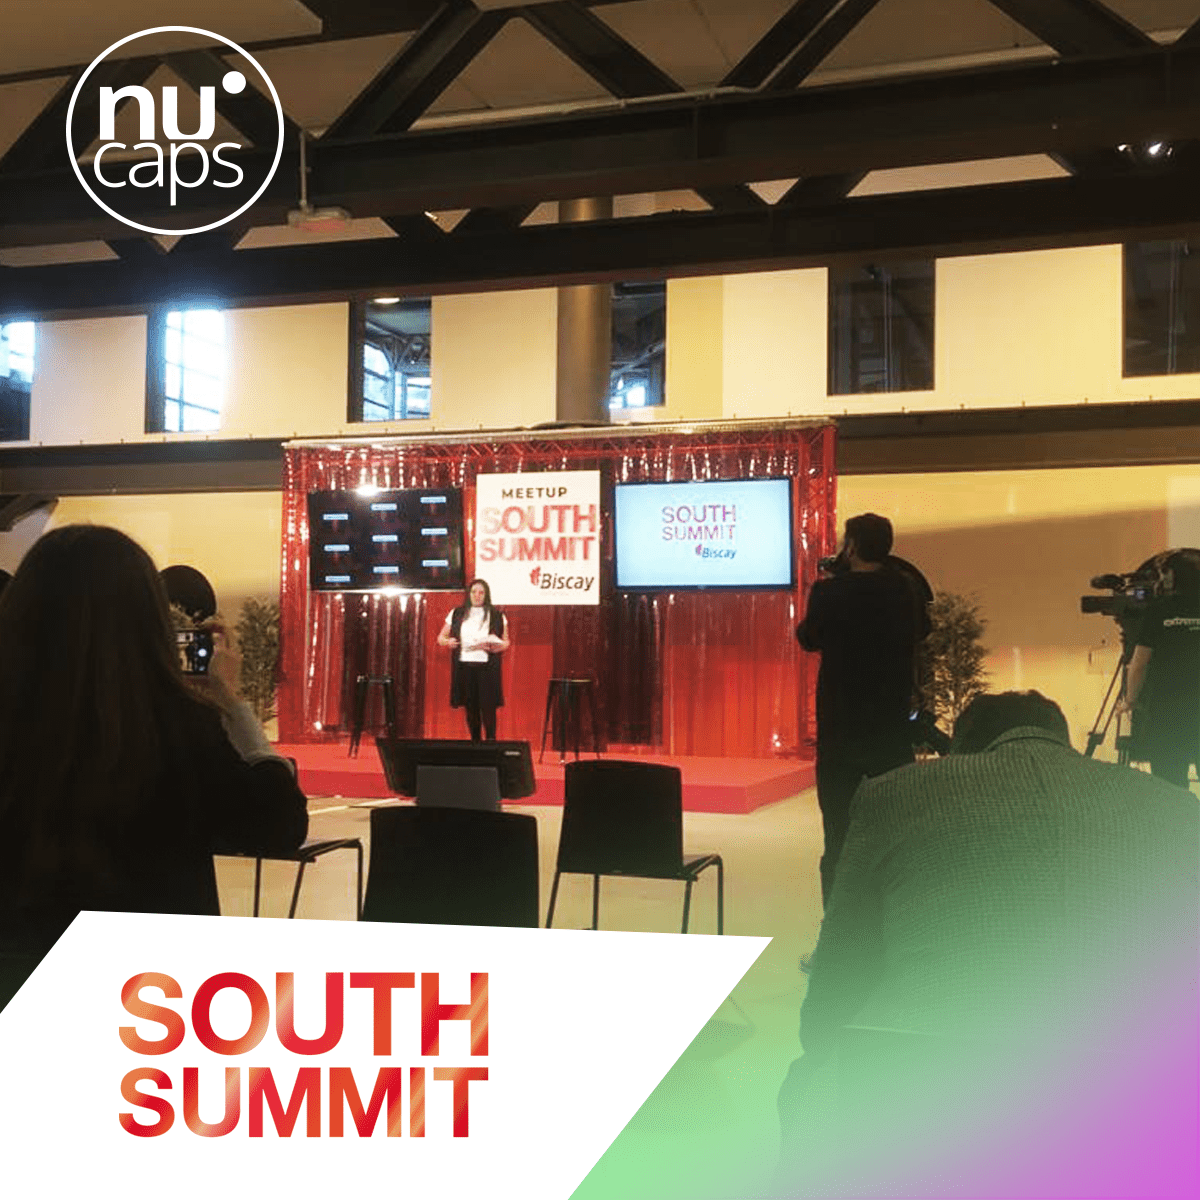 Image of Biscay SouthSummit, another opportunity to publicize the Nucaps project.